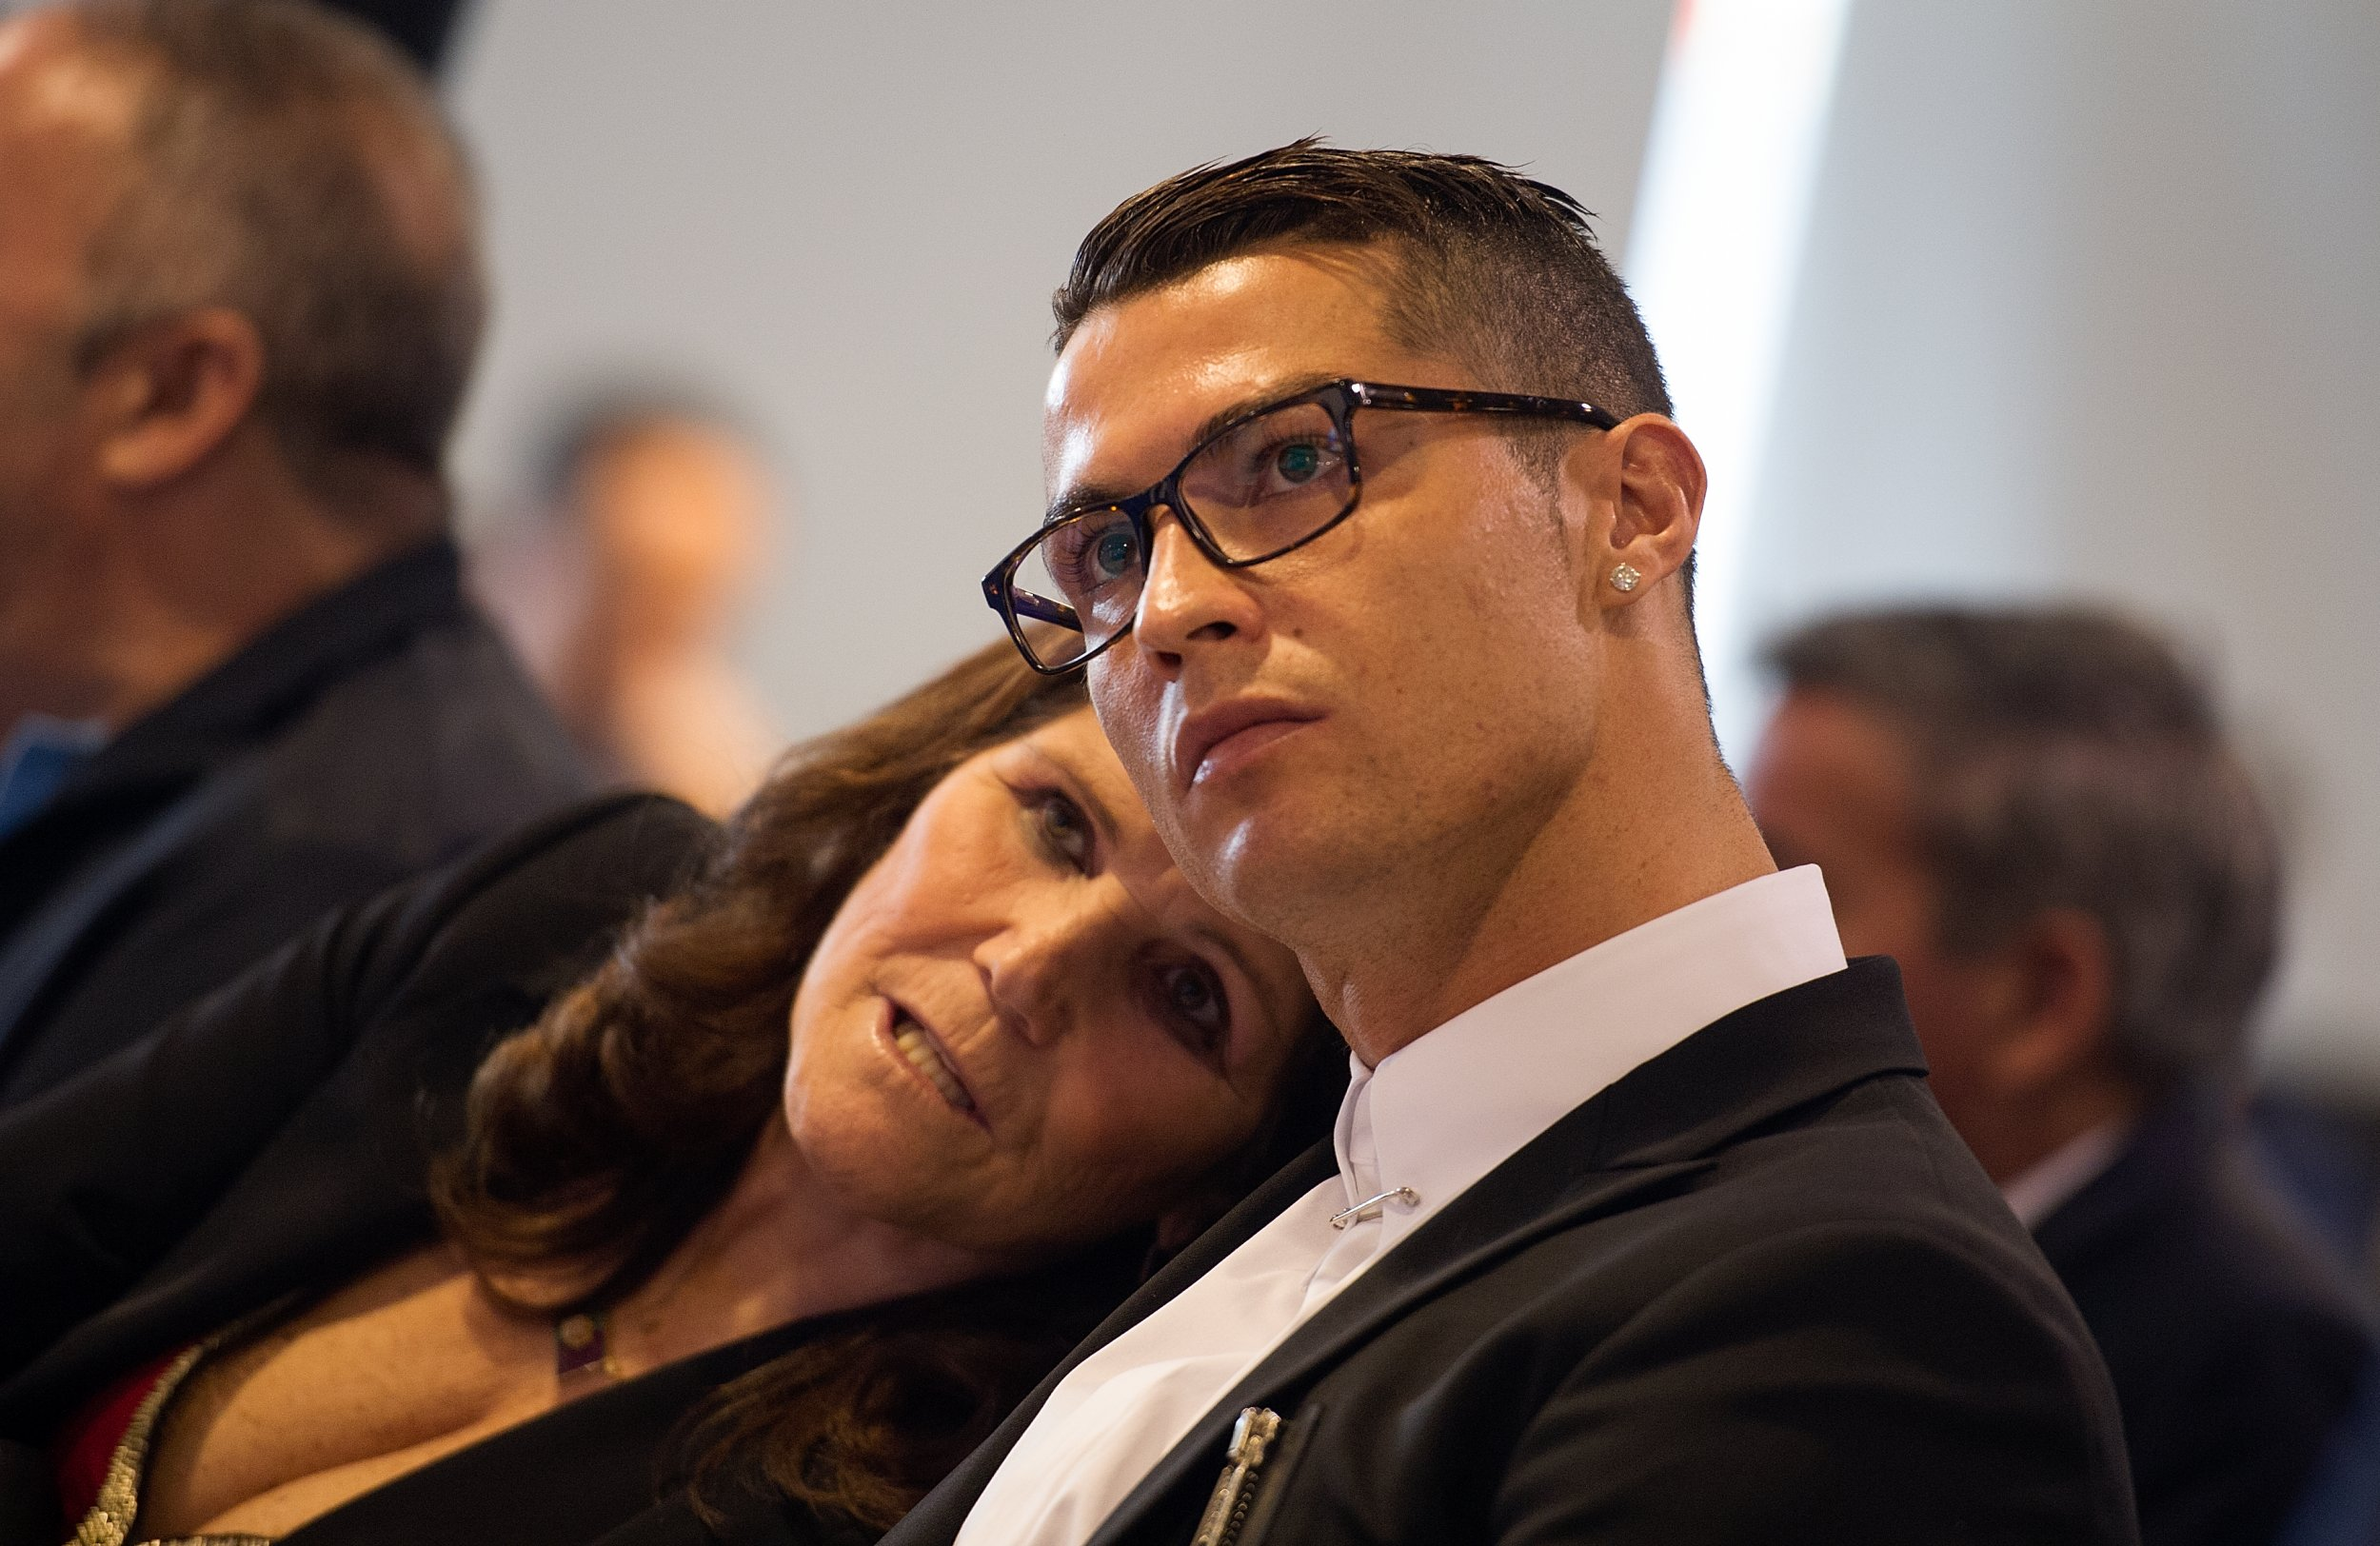 Cristiano Ronaldo Why Real Madrid Star Adopted Role Of